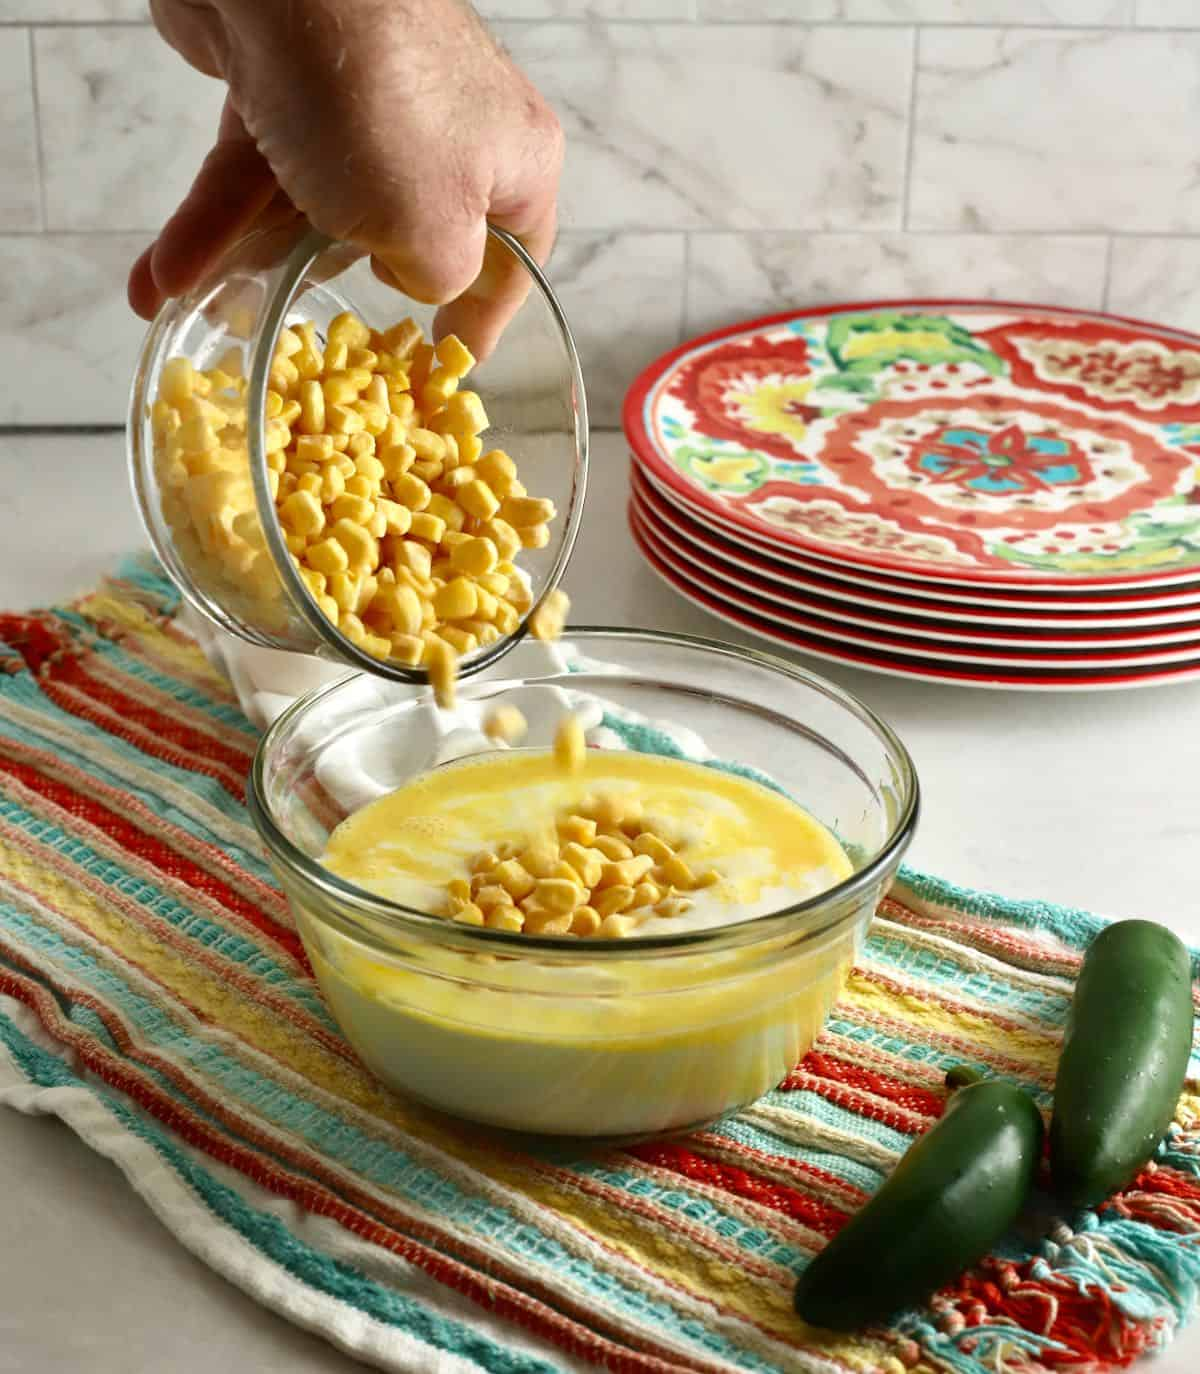 Pouring corn into a bowl with buttermilk and eggs.